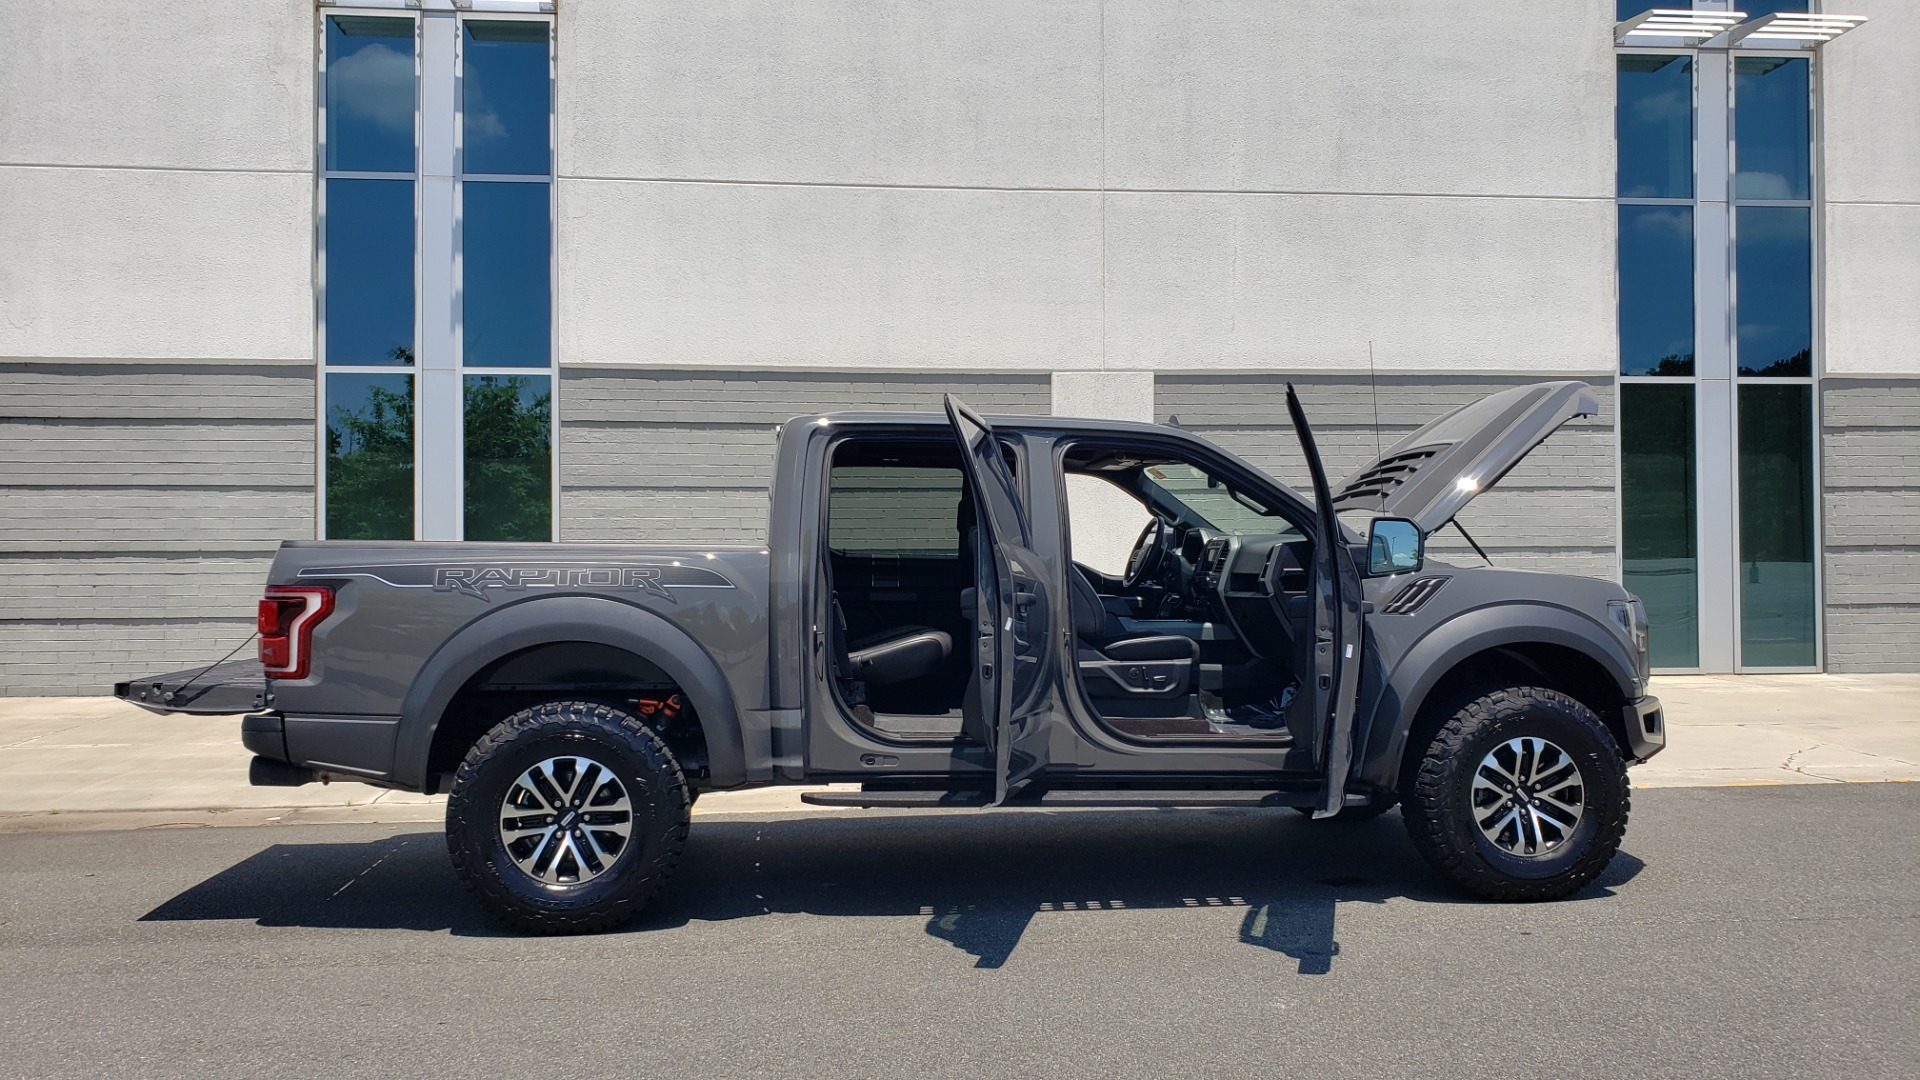 Used 2020 Ford F-150 RAPTOR 4X4 SUPERCREW / 3.5L ECOBOOST / 10-SPD AUTO / SUNROOF / REARVIEW for sale $82,500 at Formula Imports in Charlotte NC 28227 15